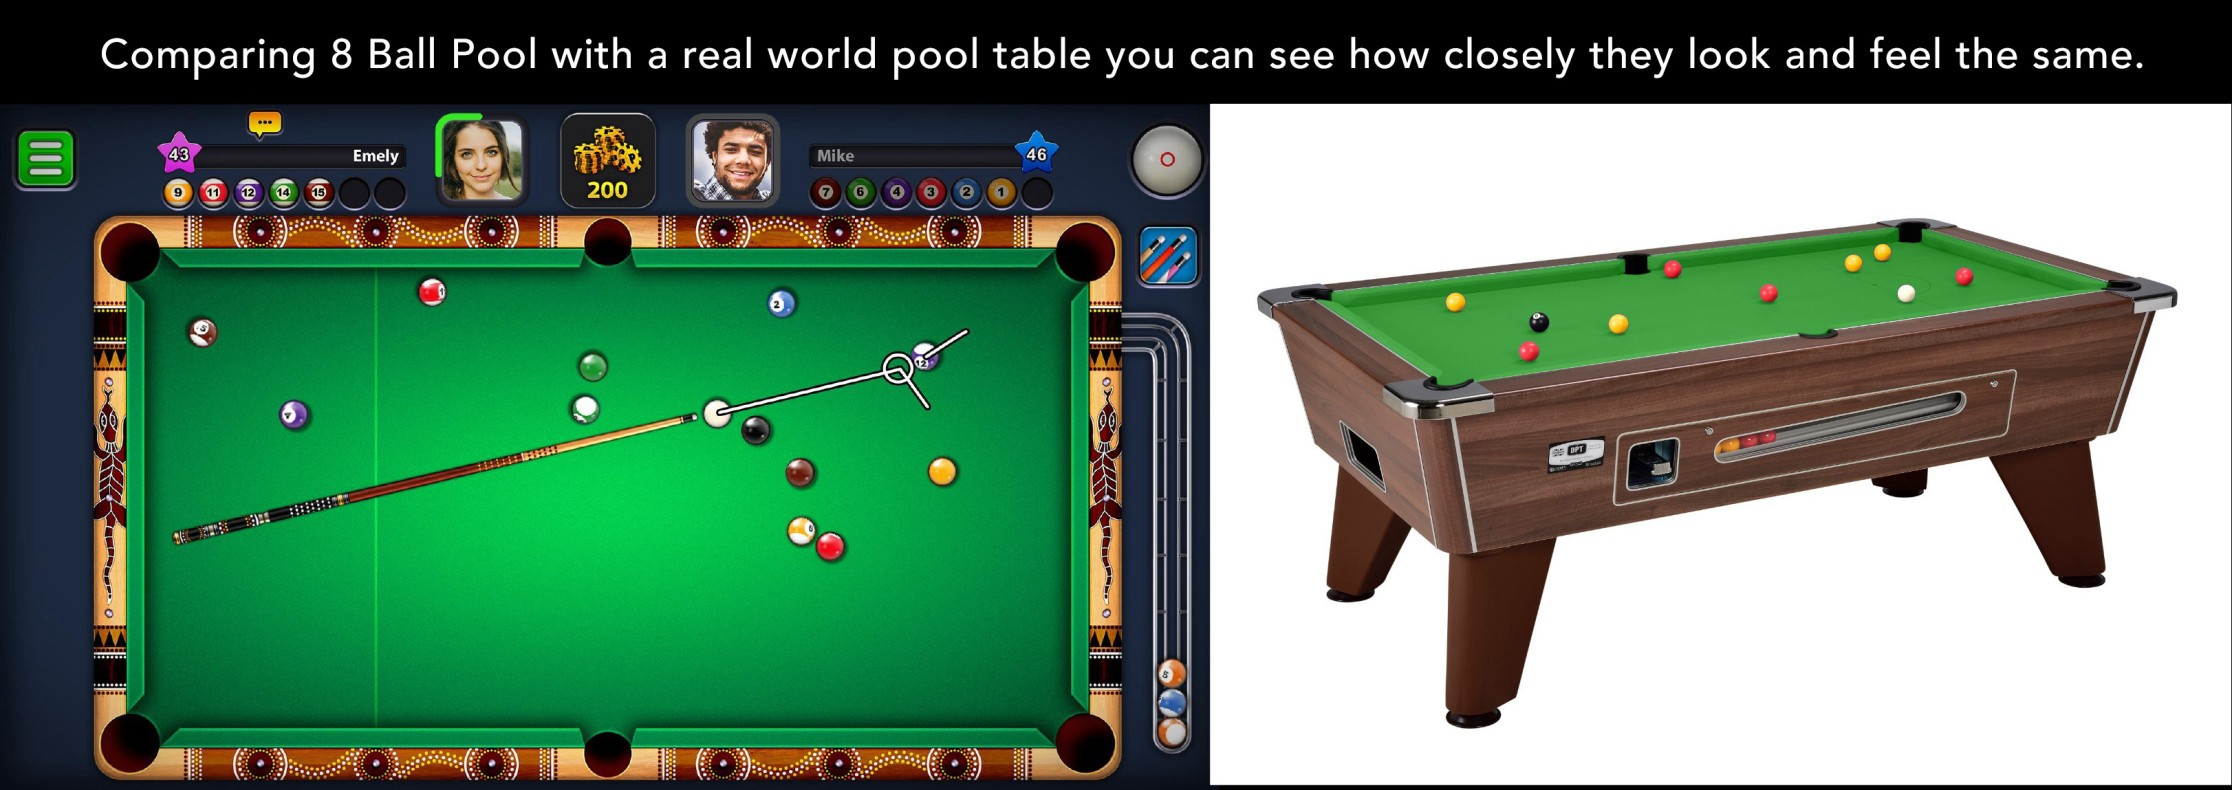 8 ball pool betting cards aiding abetting minor in need of supervision management